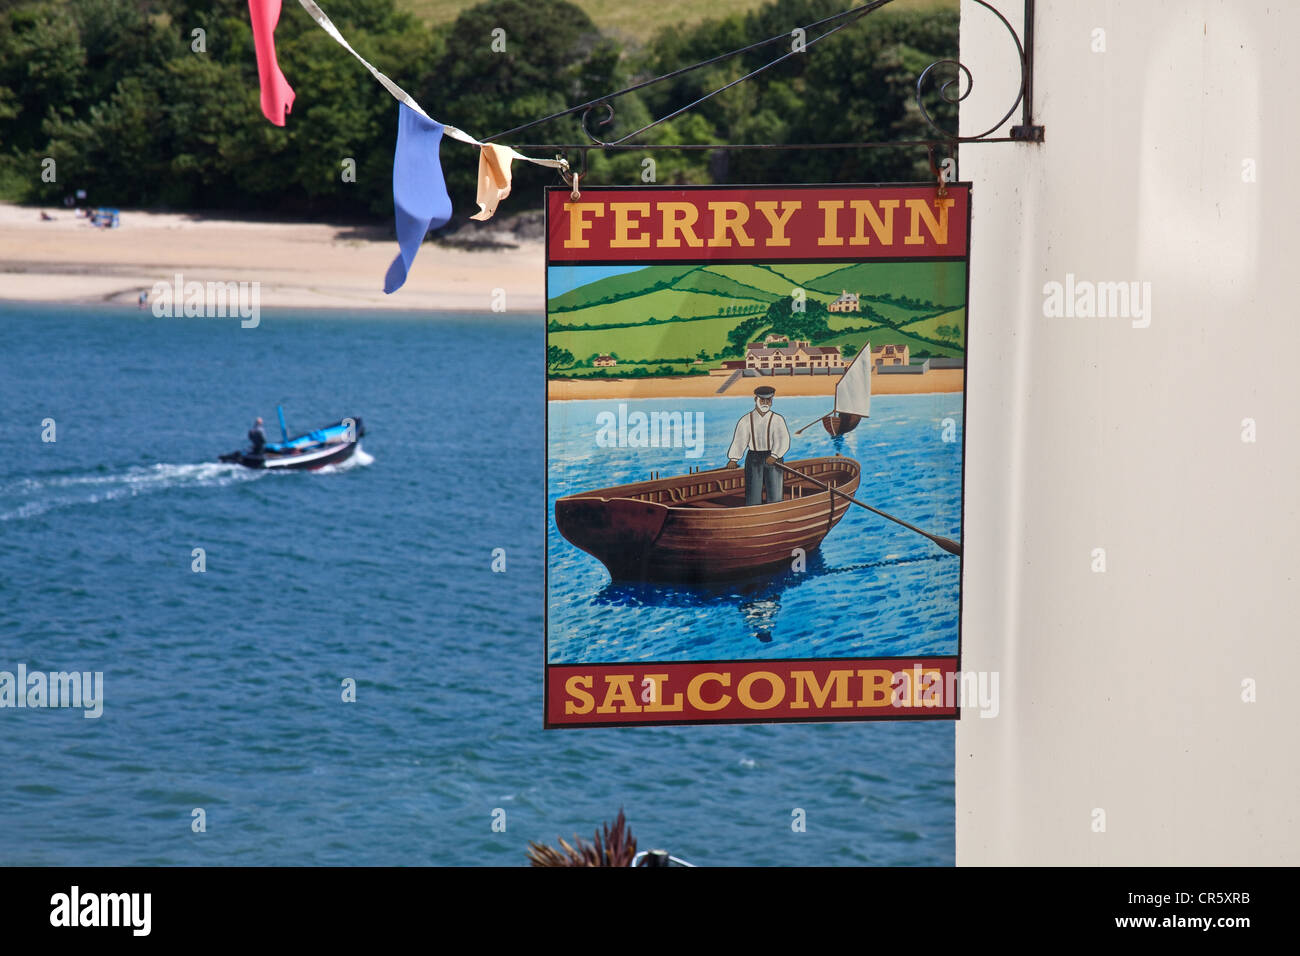 The Ferry Boat inn with the ferry or water taxi  in the background.Salcombe, Devon, England, United Kingdom. - Stock Image